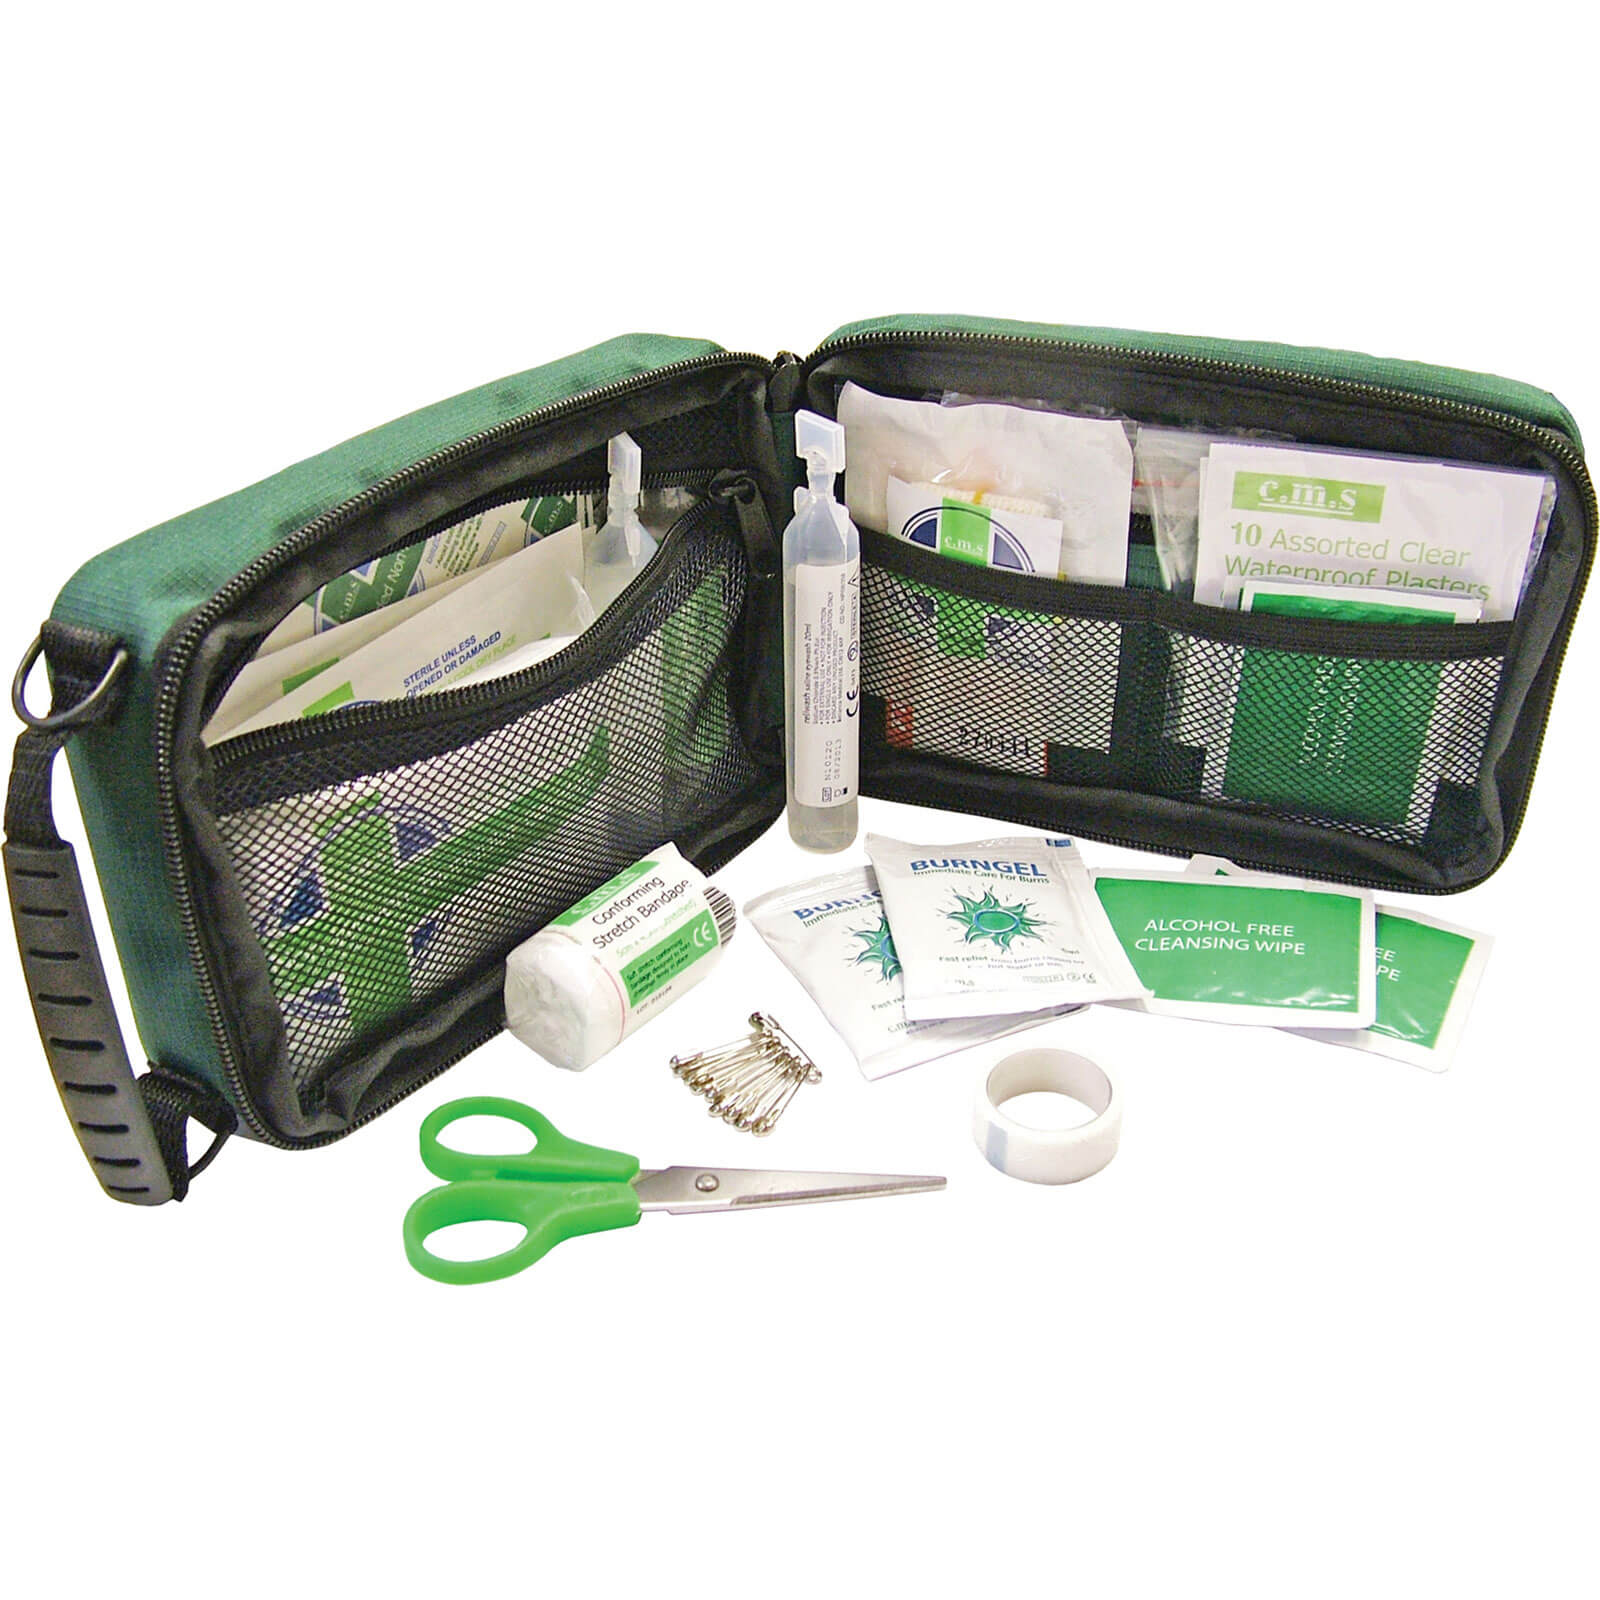 Image of Scan 45 Piece Household and Burns First Aid Kit